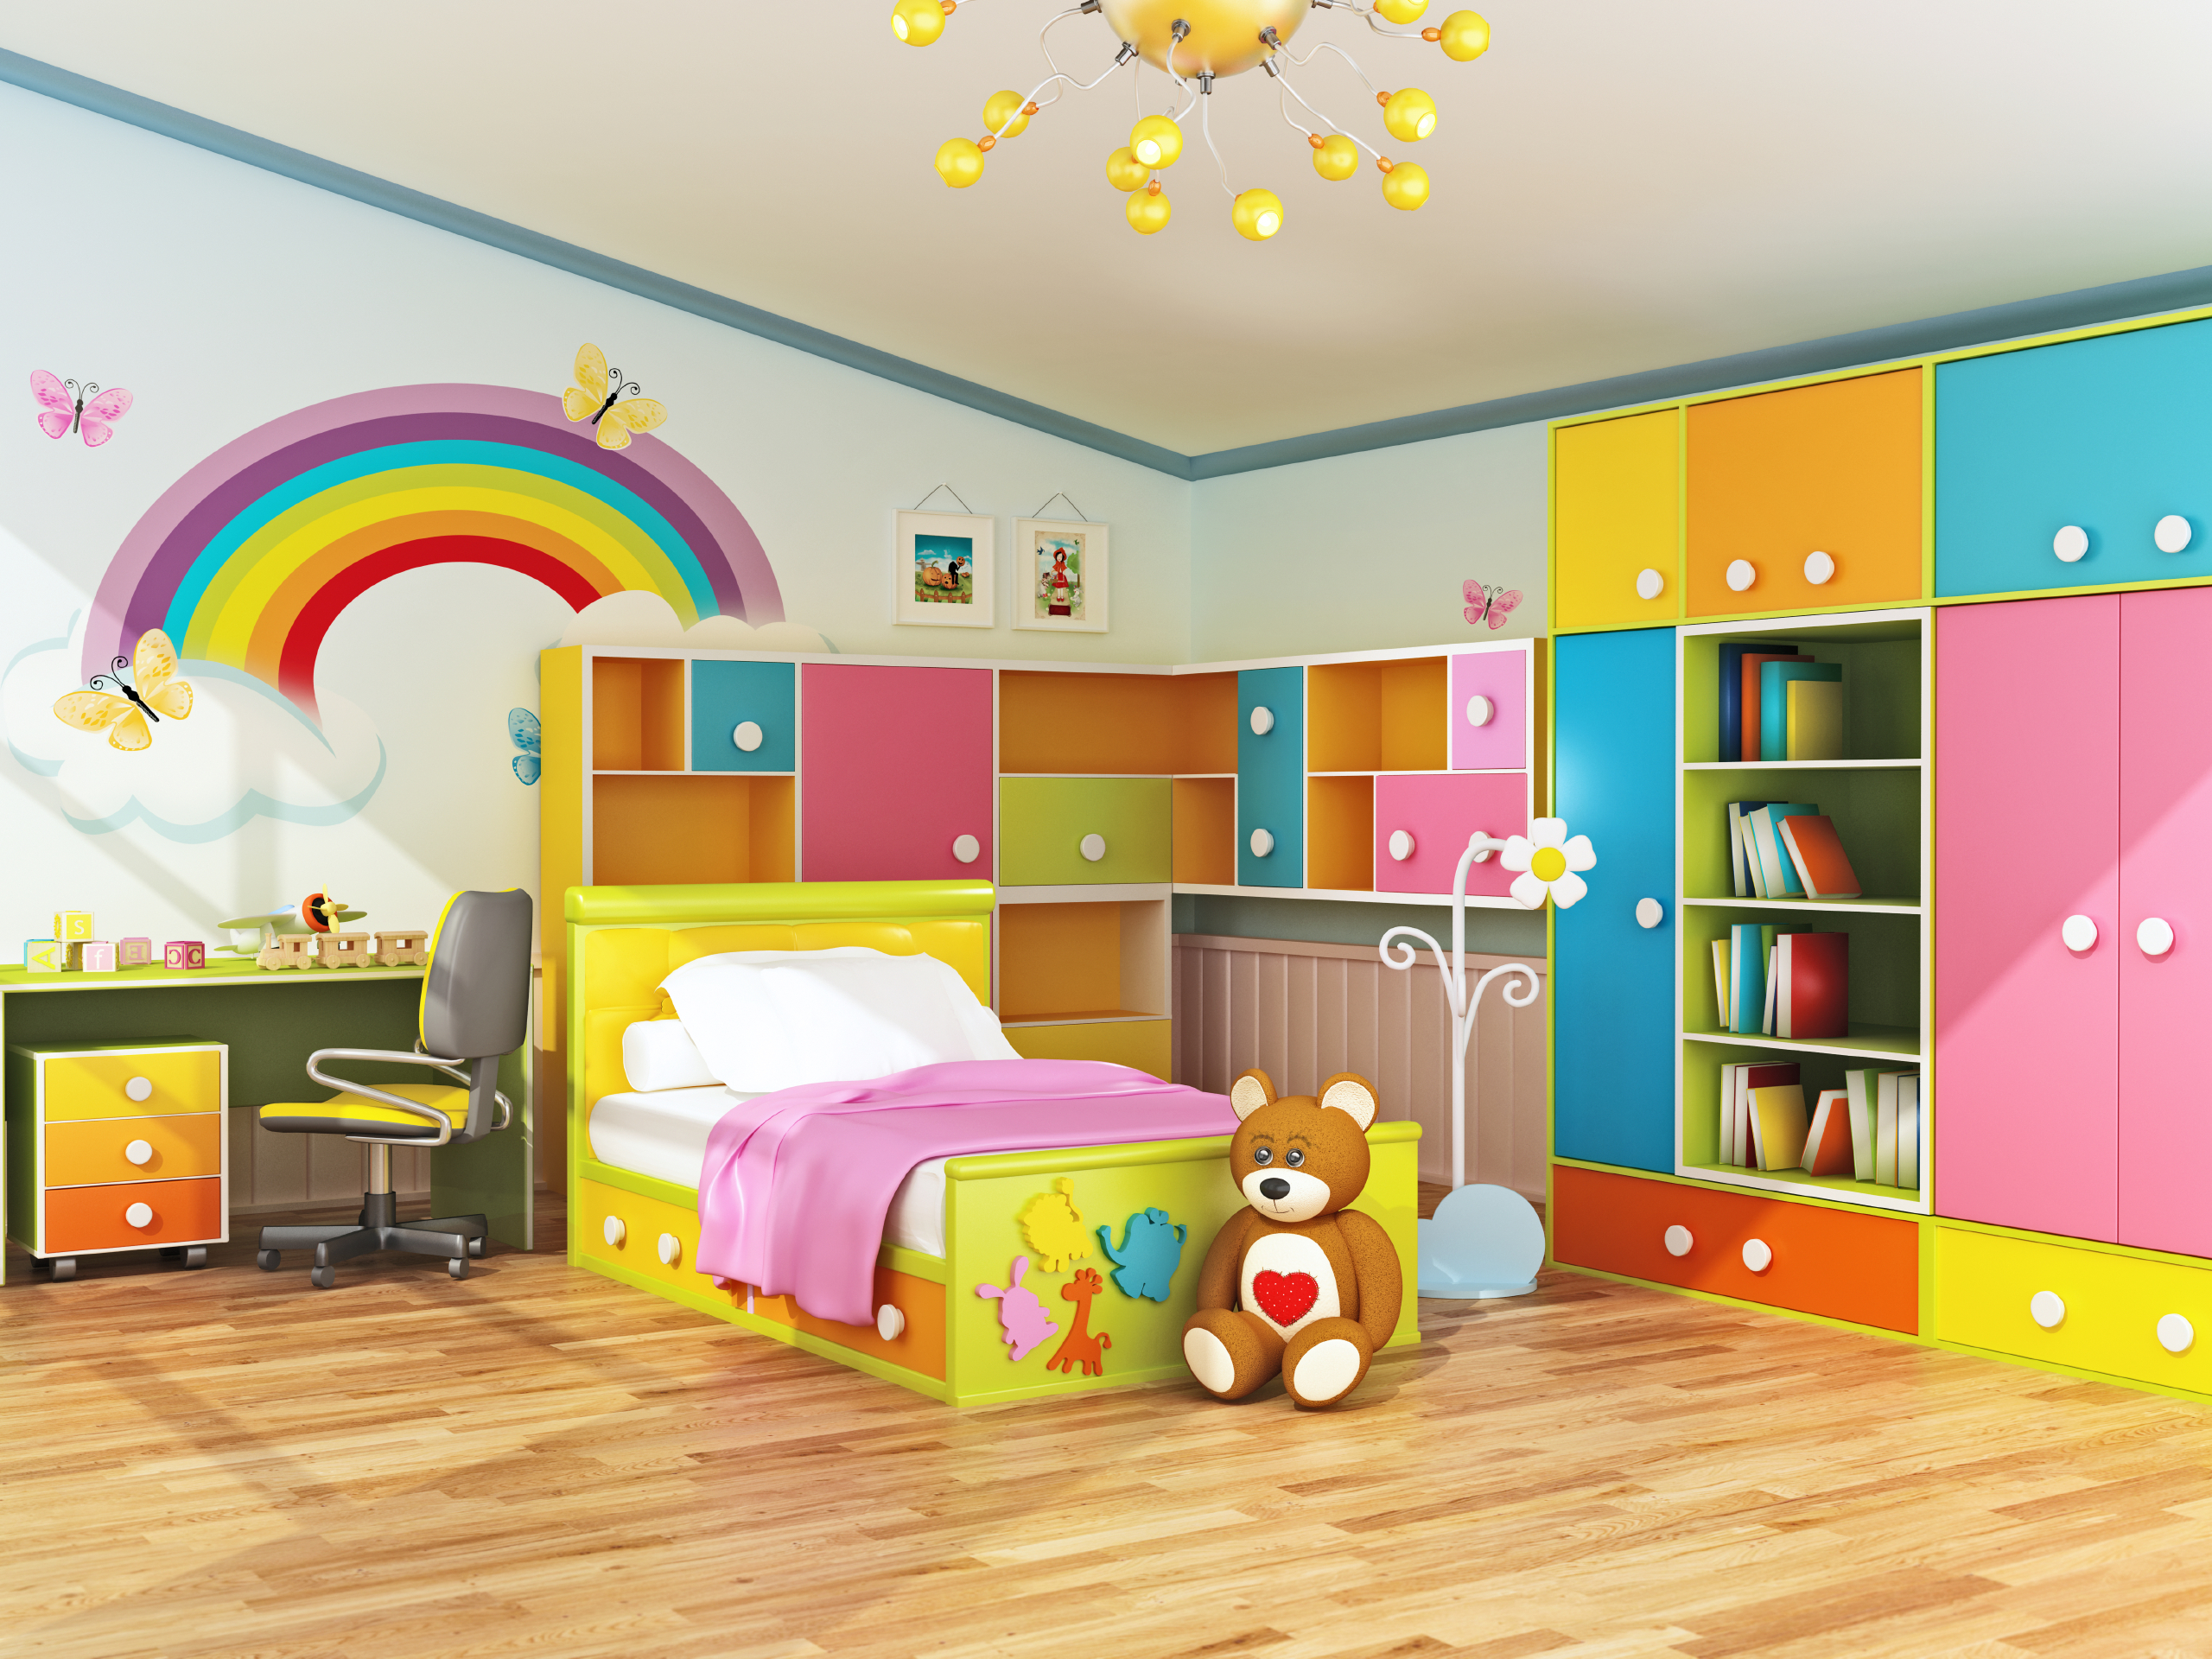 Plan ahead when decorating kids 39 bedrooms rismedia 39 s housecall - Children bedrooms ...